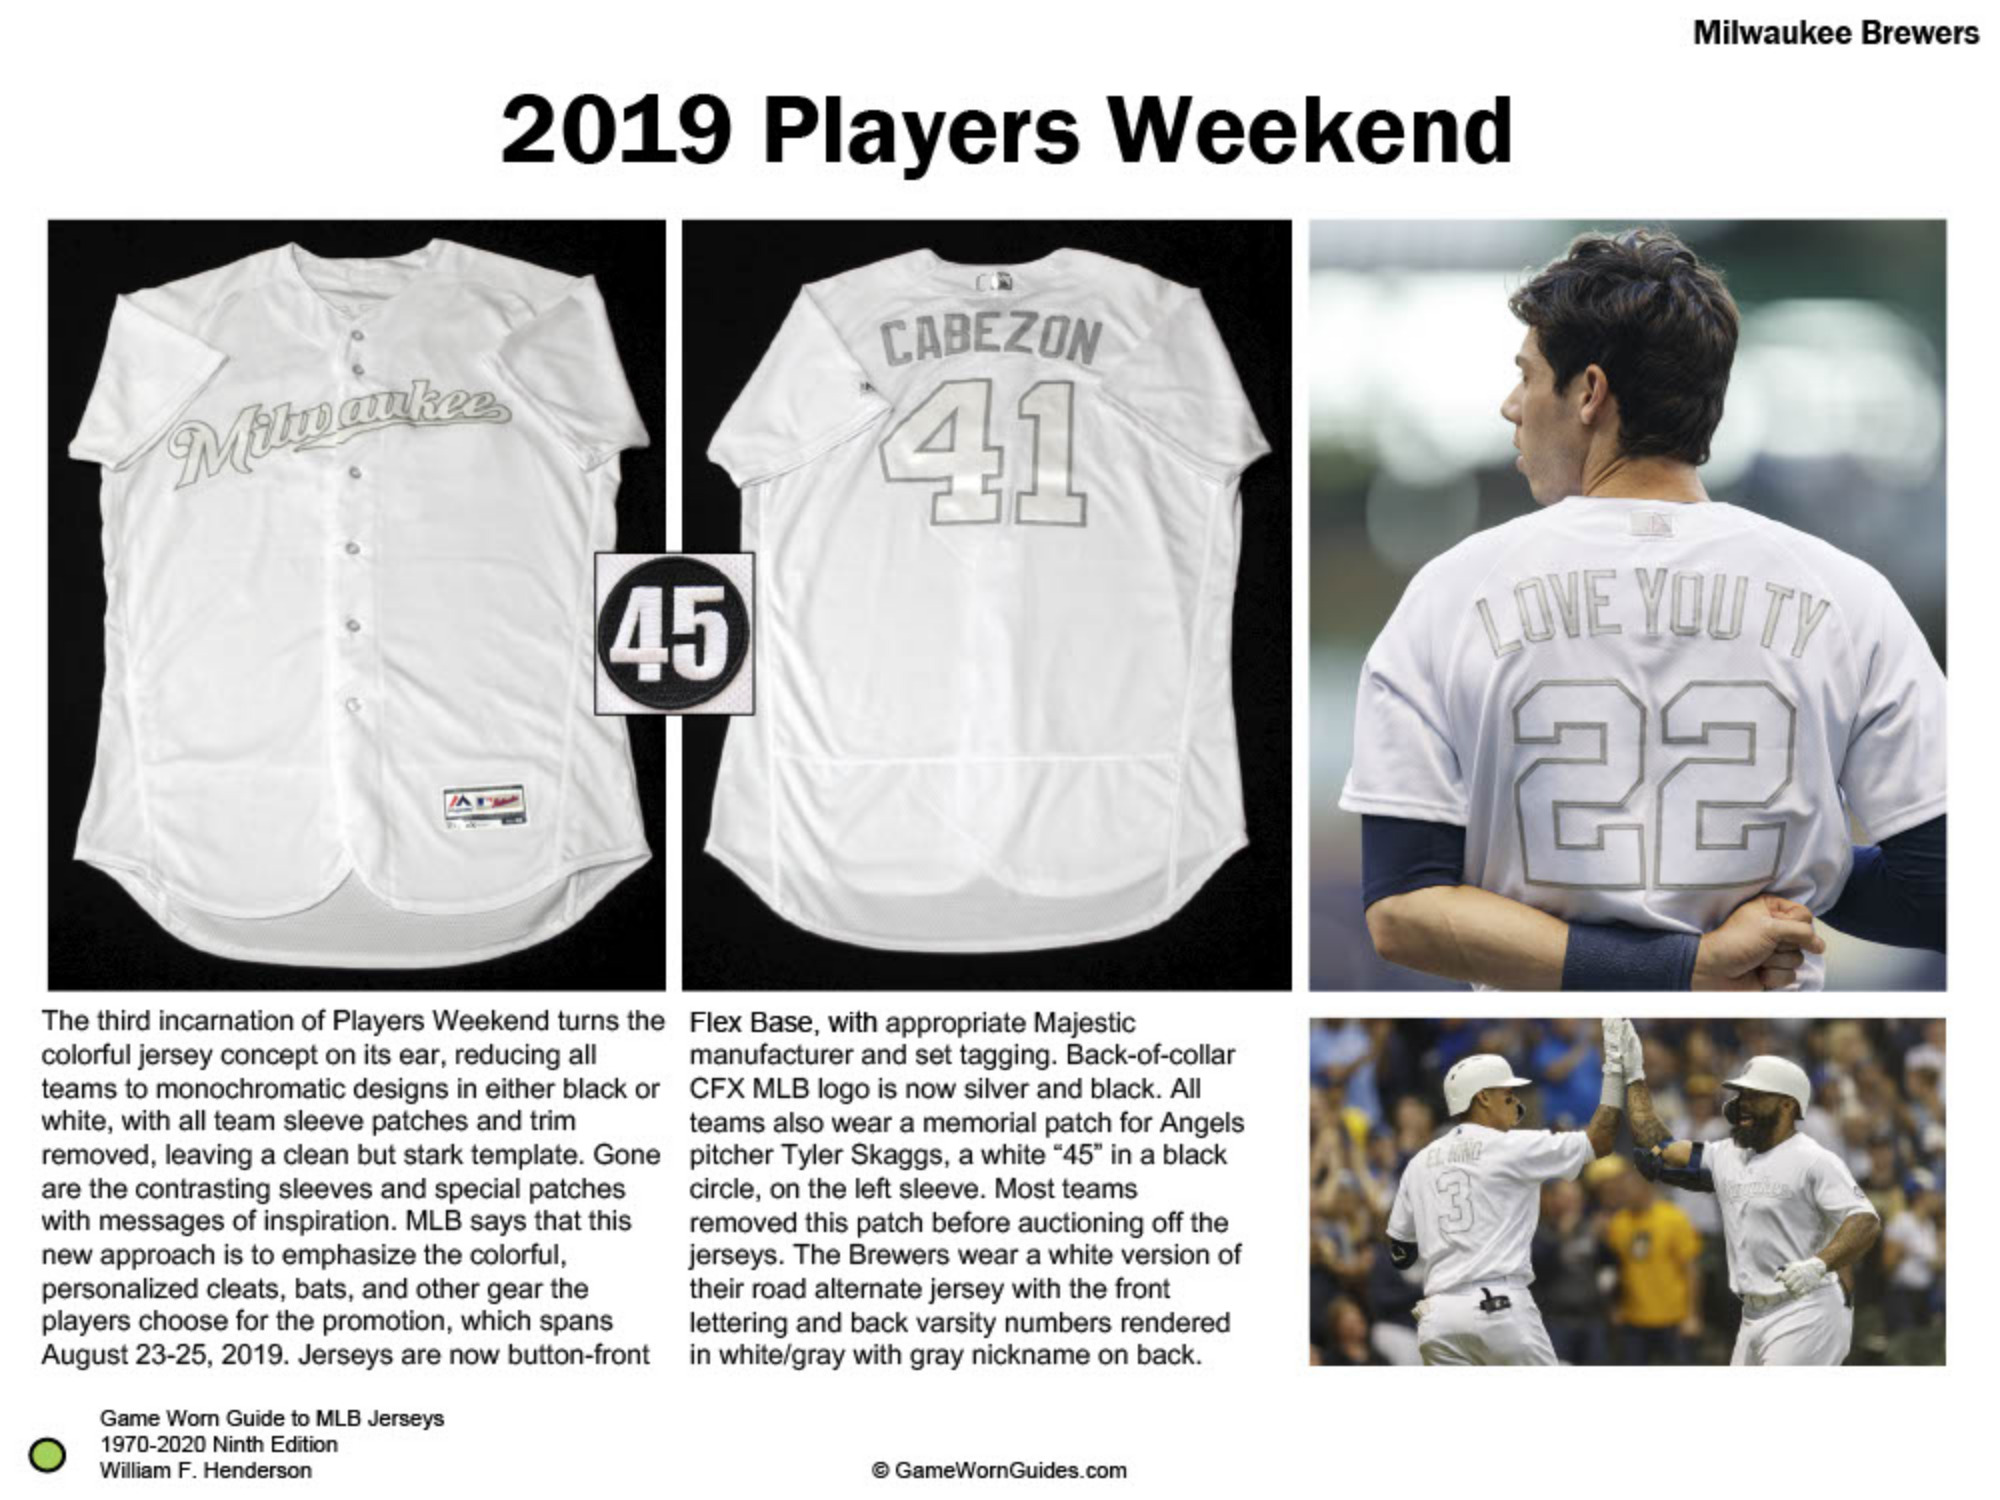 Game Worn Guide to Milwaukee Brewers Jerseys (1970-2020)